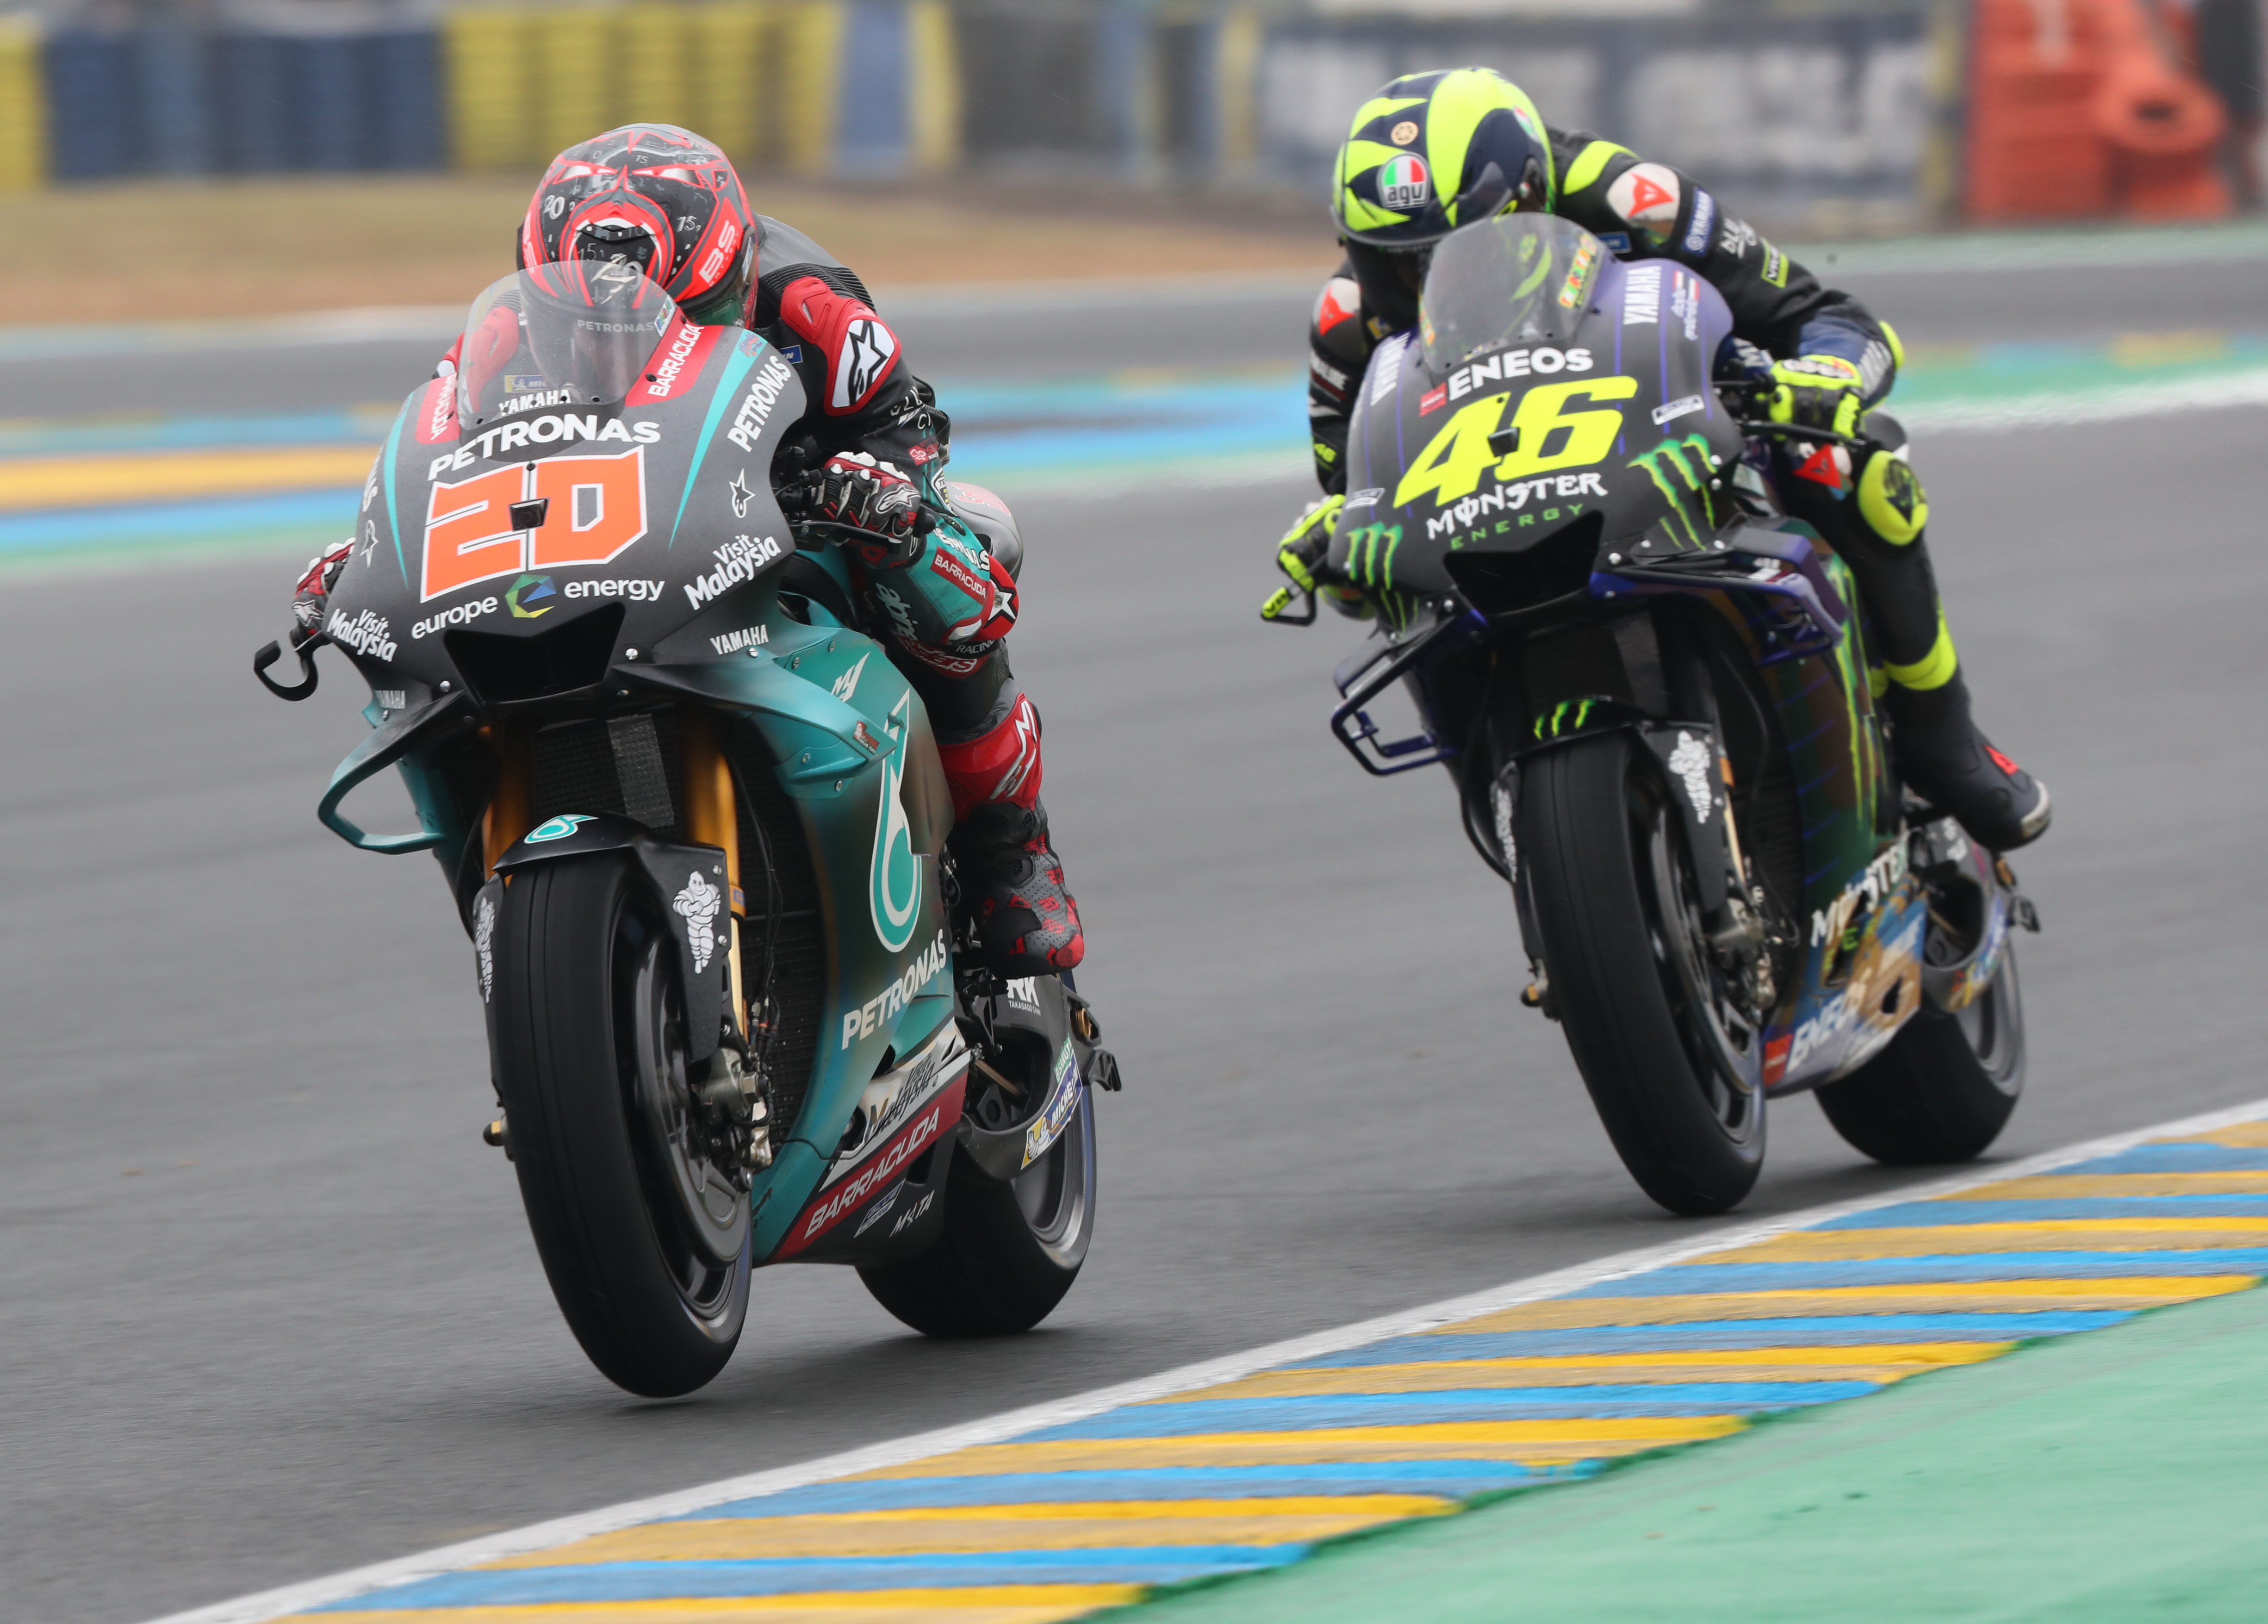 Rossi Has Signed Petronas Yamaha Deal To Stay In Motogp The Race